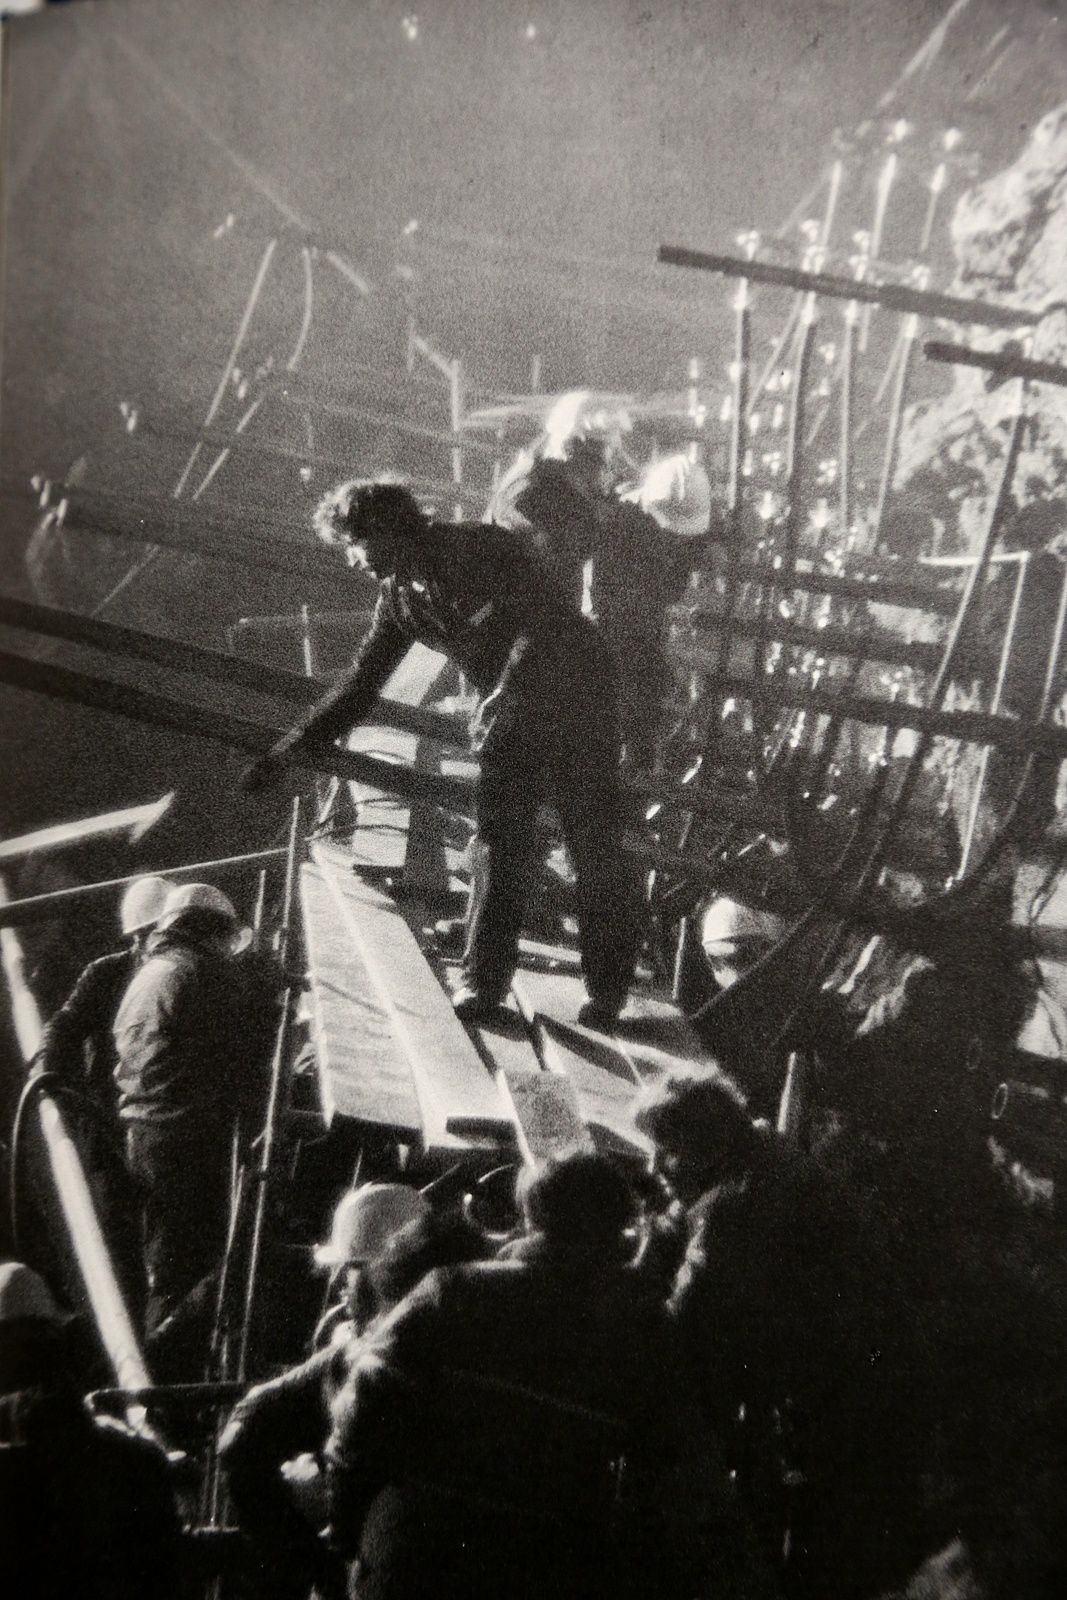 """On the night of May 13 to 14, 1983, the fireworks work under the light of a DCA projector, and put the explosives at the bottom of the 48 jacketed tubes leaving the boreholes and cooled by water pipes - photo Haroun Tazieff / in his book """"On Etna"""""""